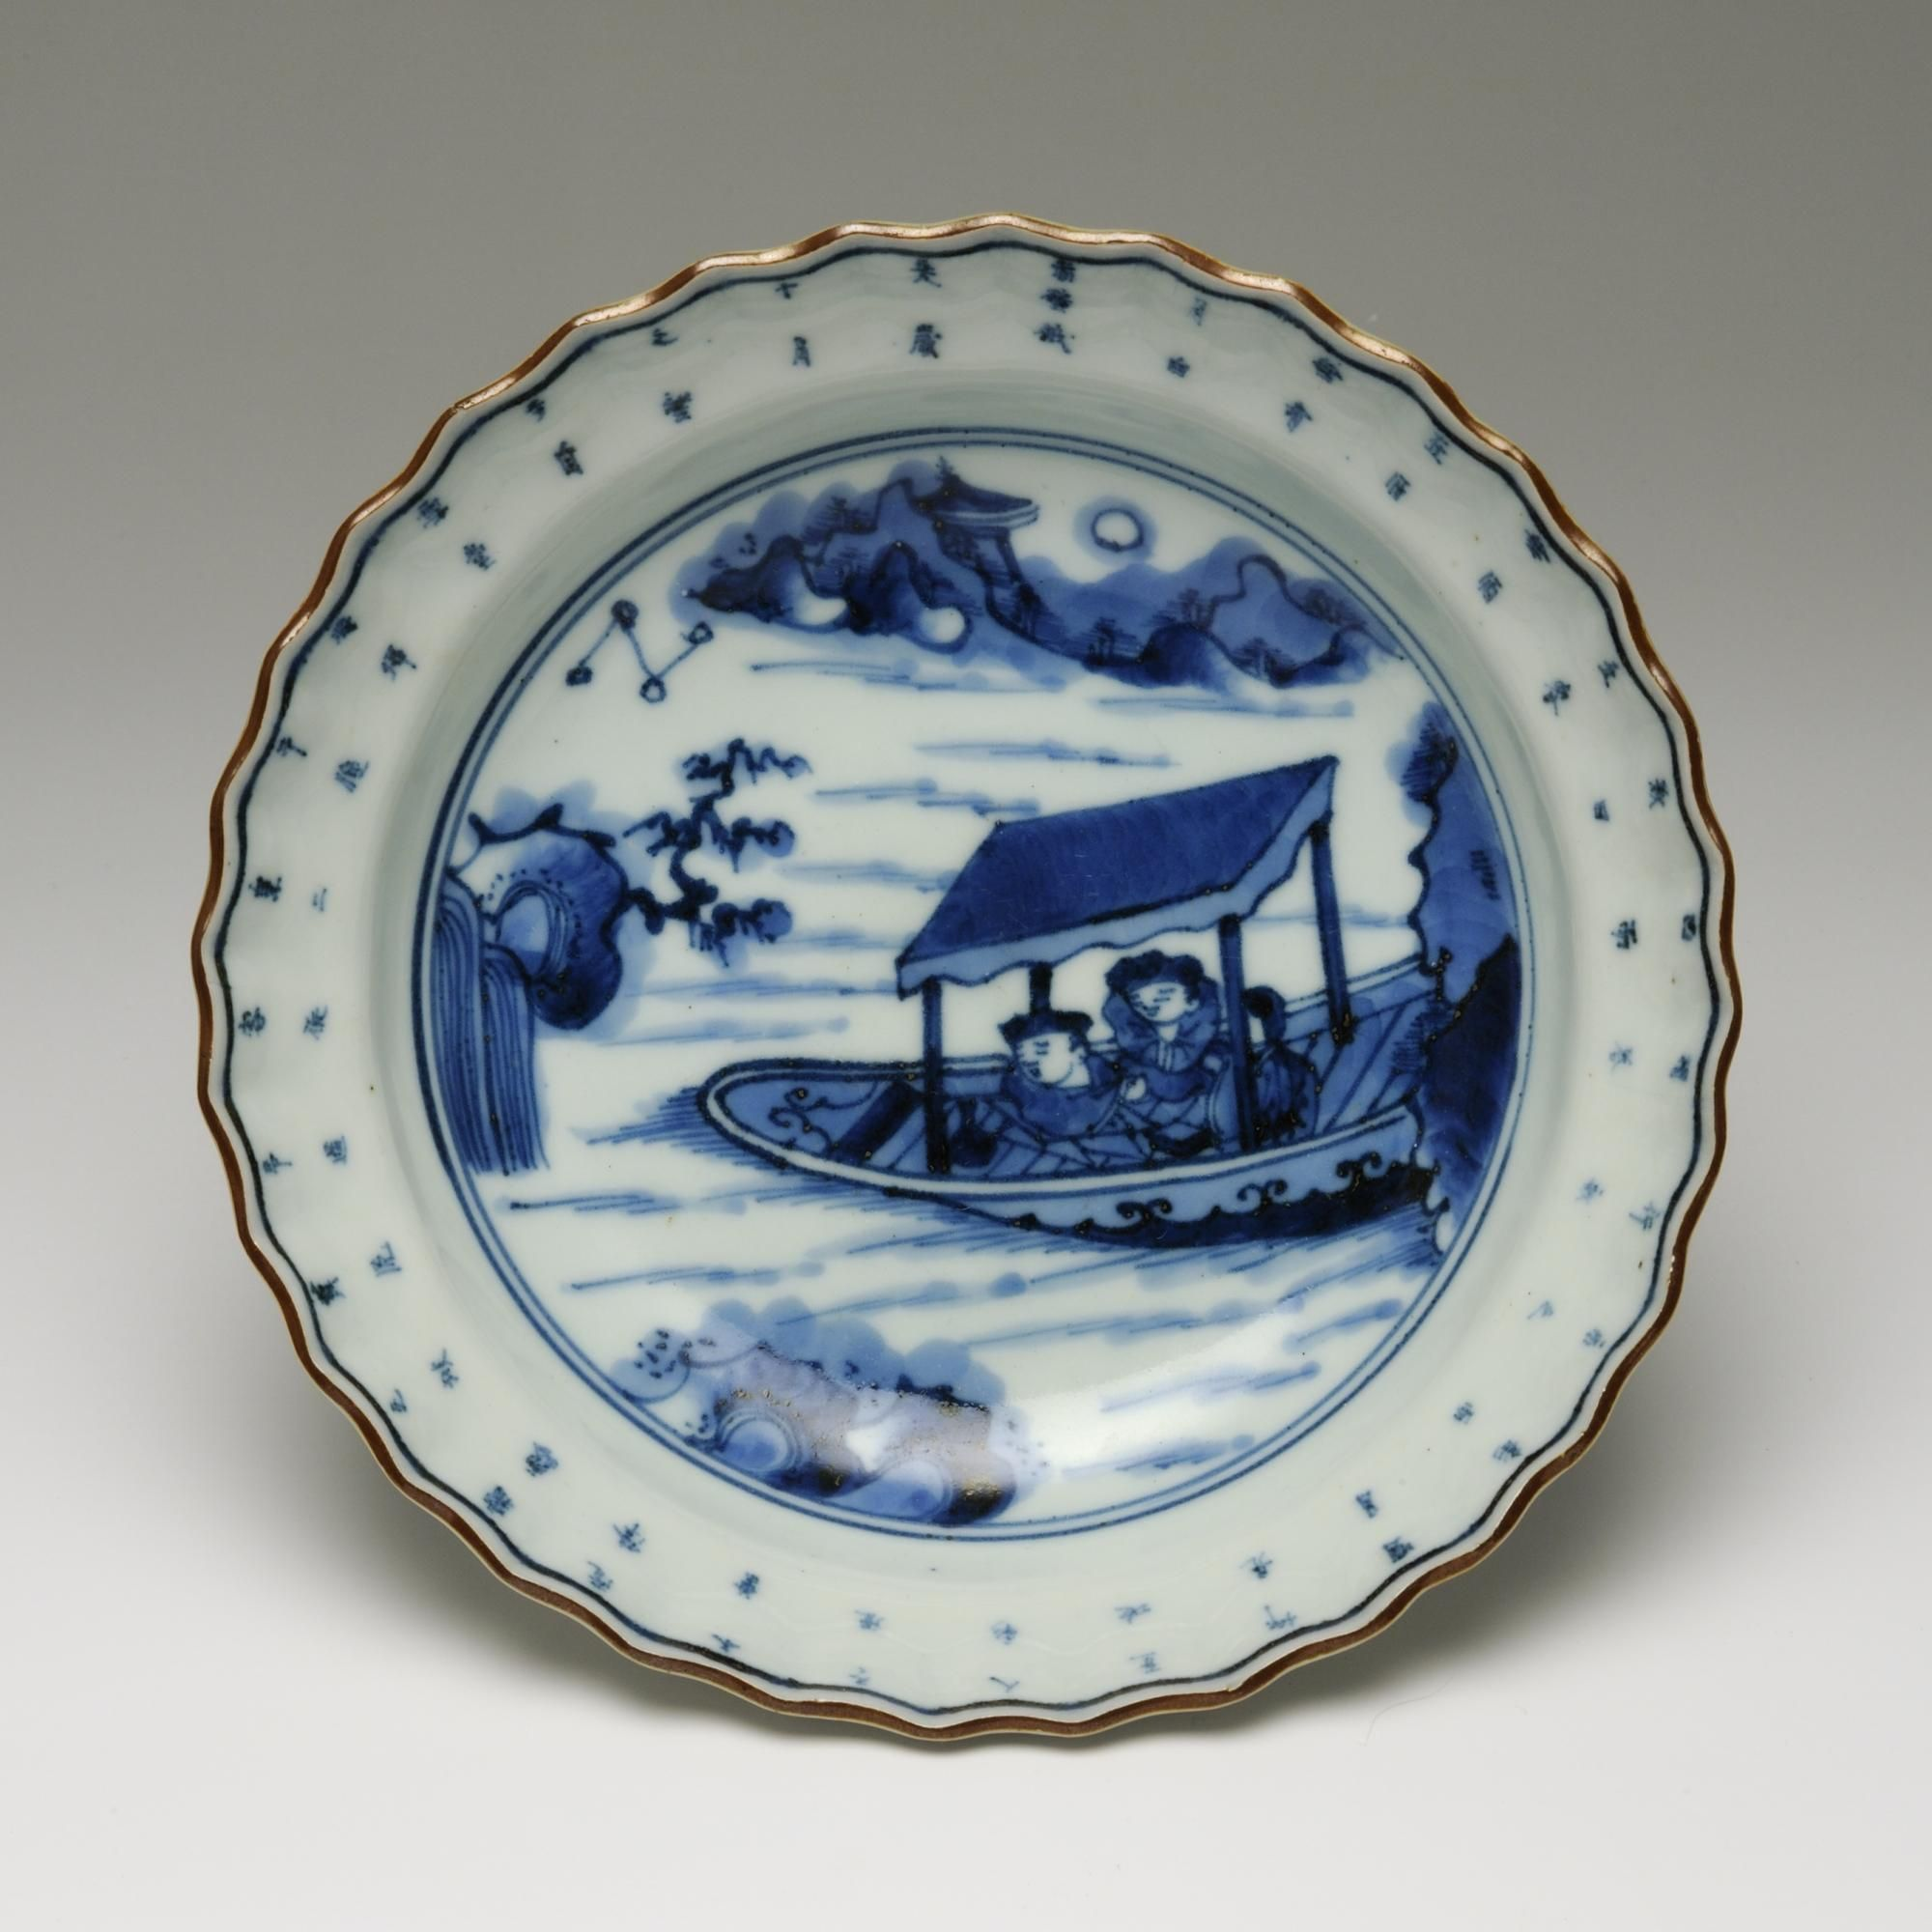 Circular dish of porcelain with fluted rim, decorated in underglaze blue with picture of two men in a covered boats near cliffs: Japan, 18th - 19th centuries, K.2005.592